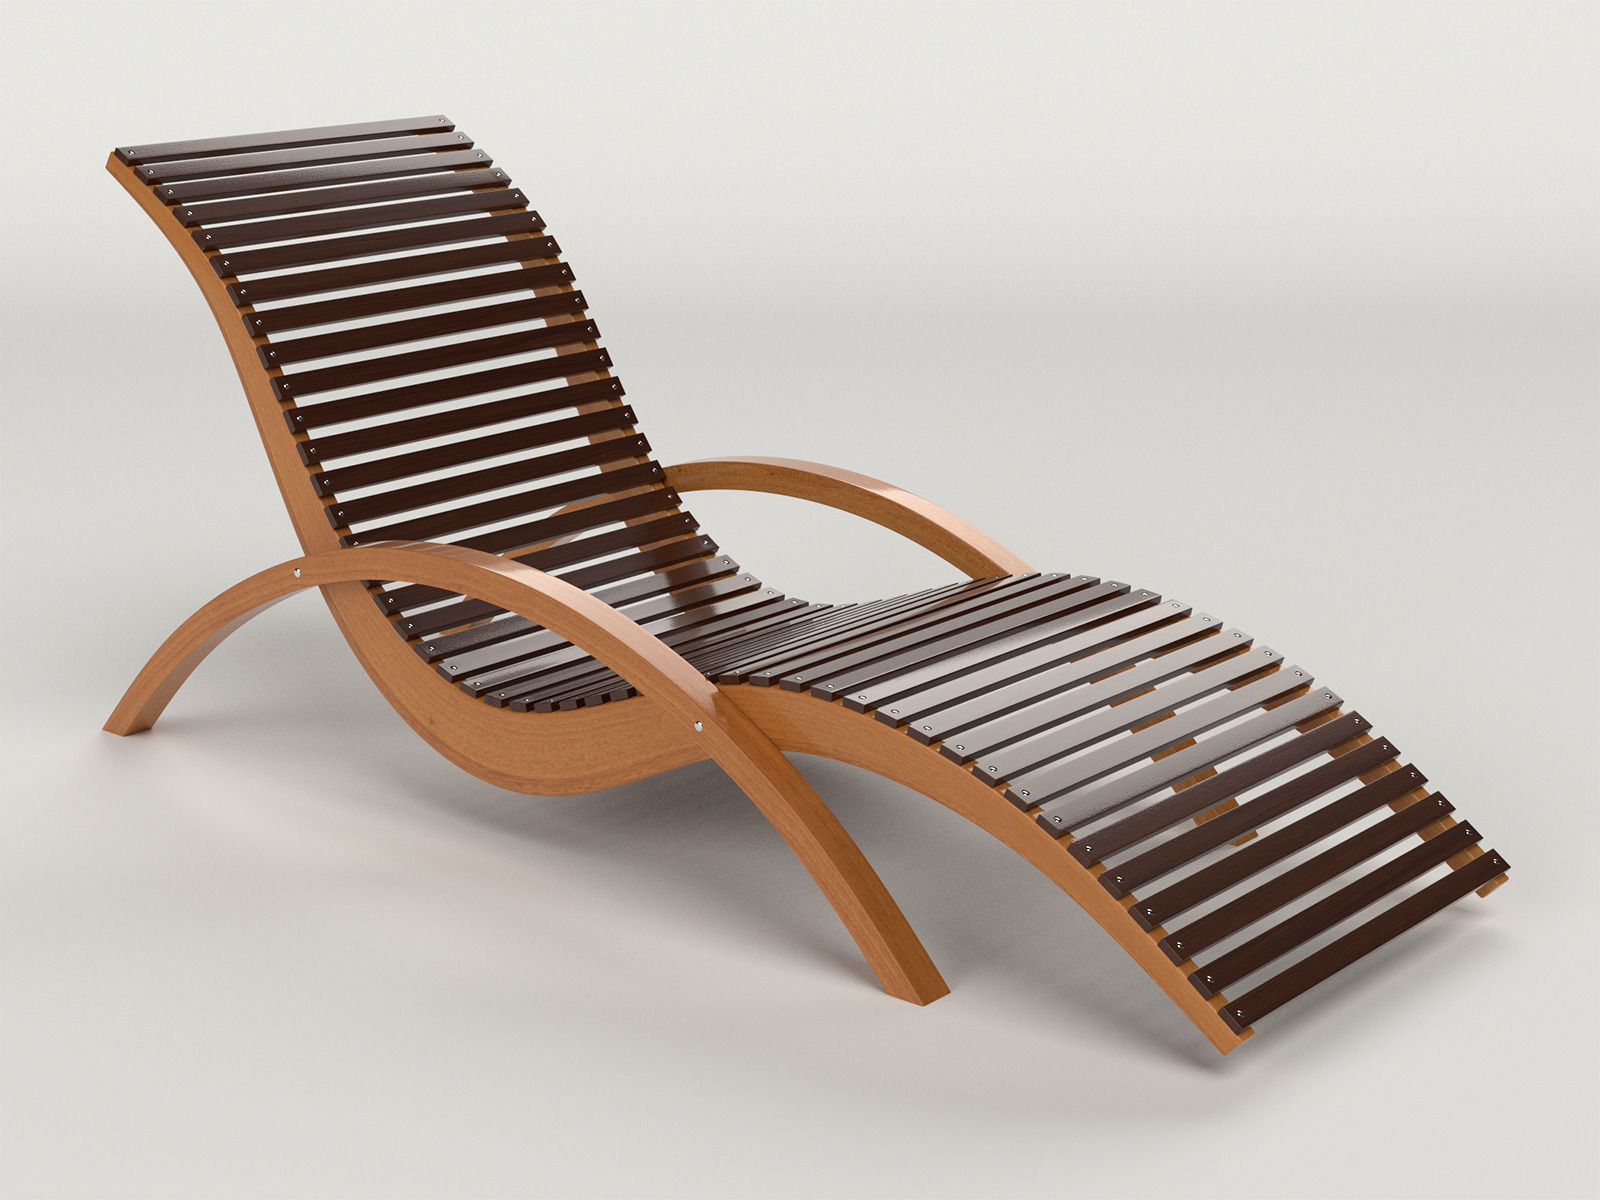 Lounge Chair Outdoor Wood Patio Deck 3d Model Obj